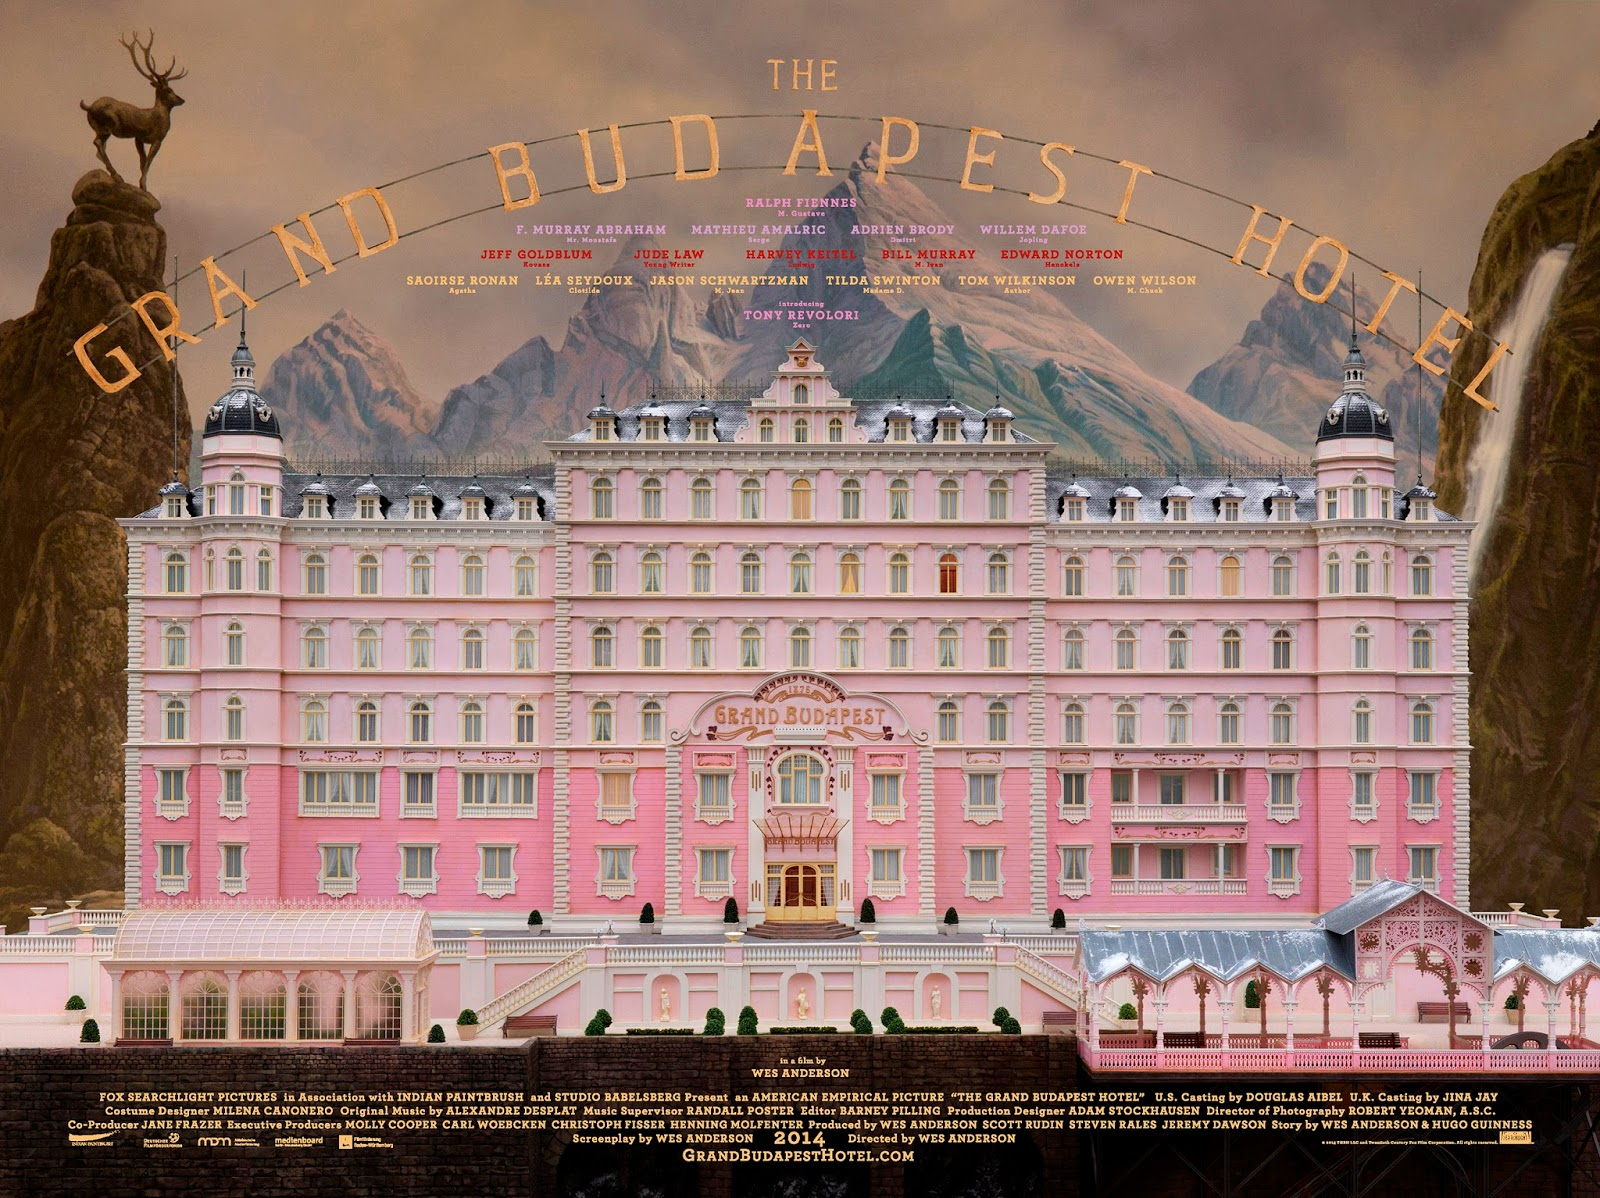 The grand budapest hotel 2014 directed by wes anderson for Hotel budapest